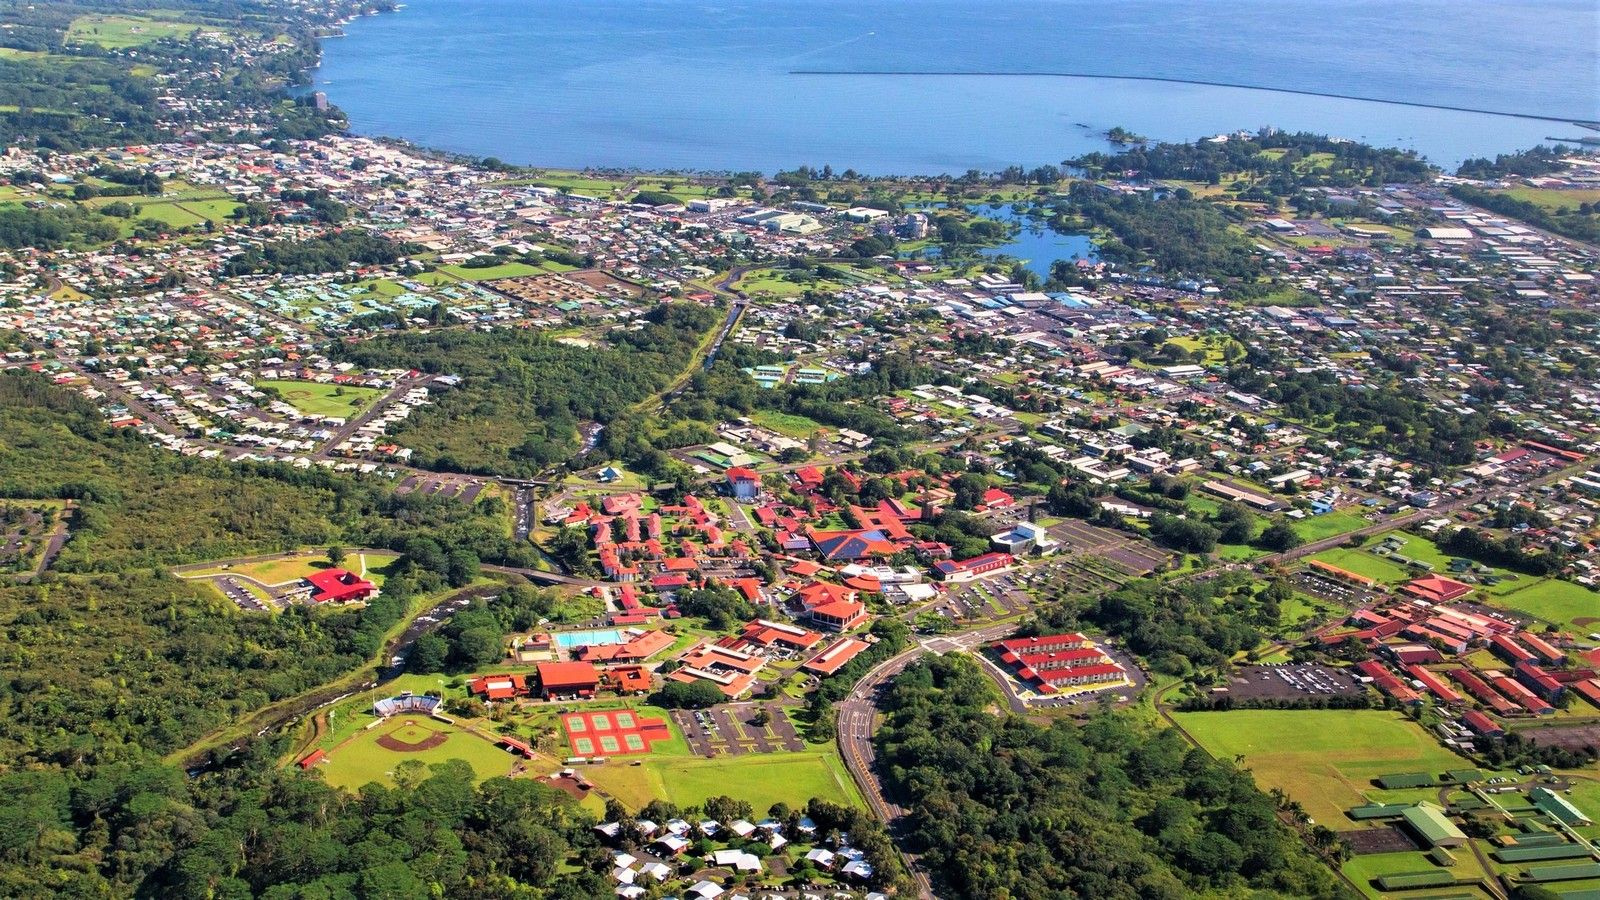 Aerial of the campus and community with Hilo Bay.